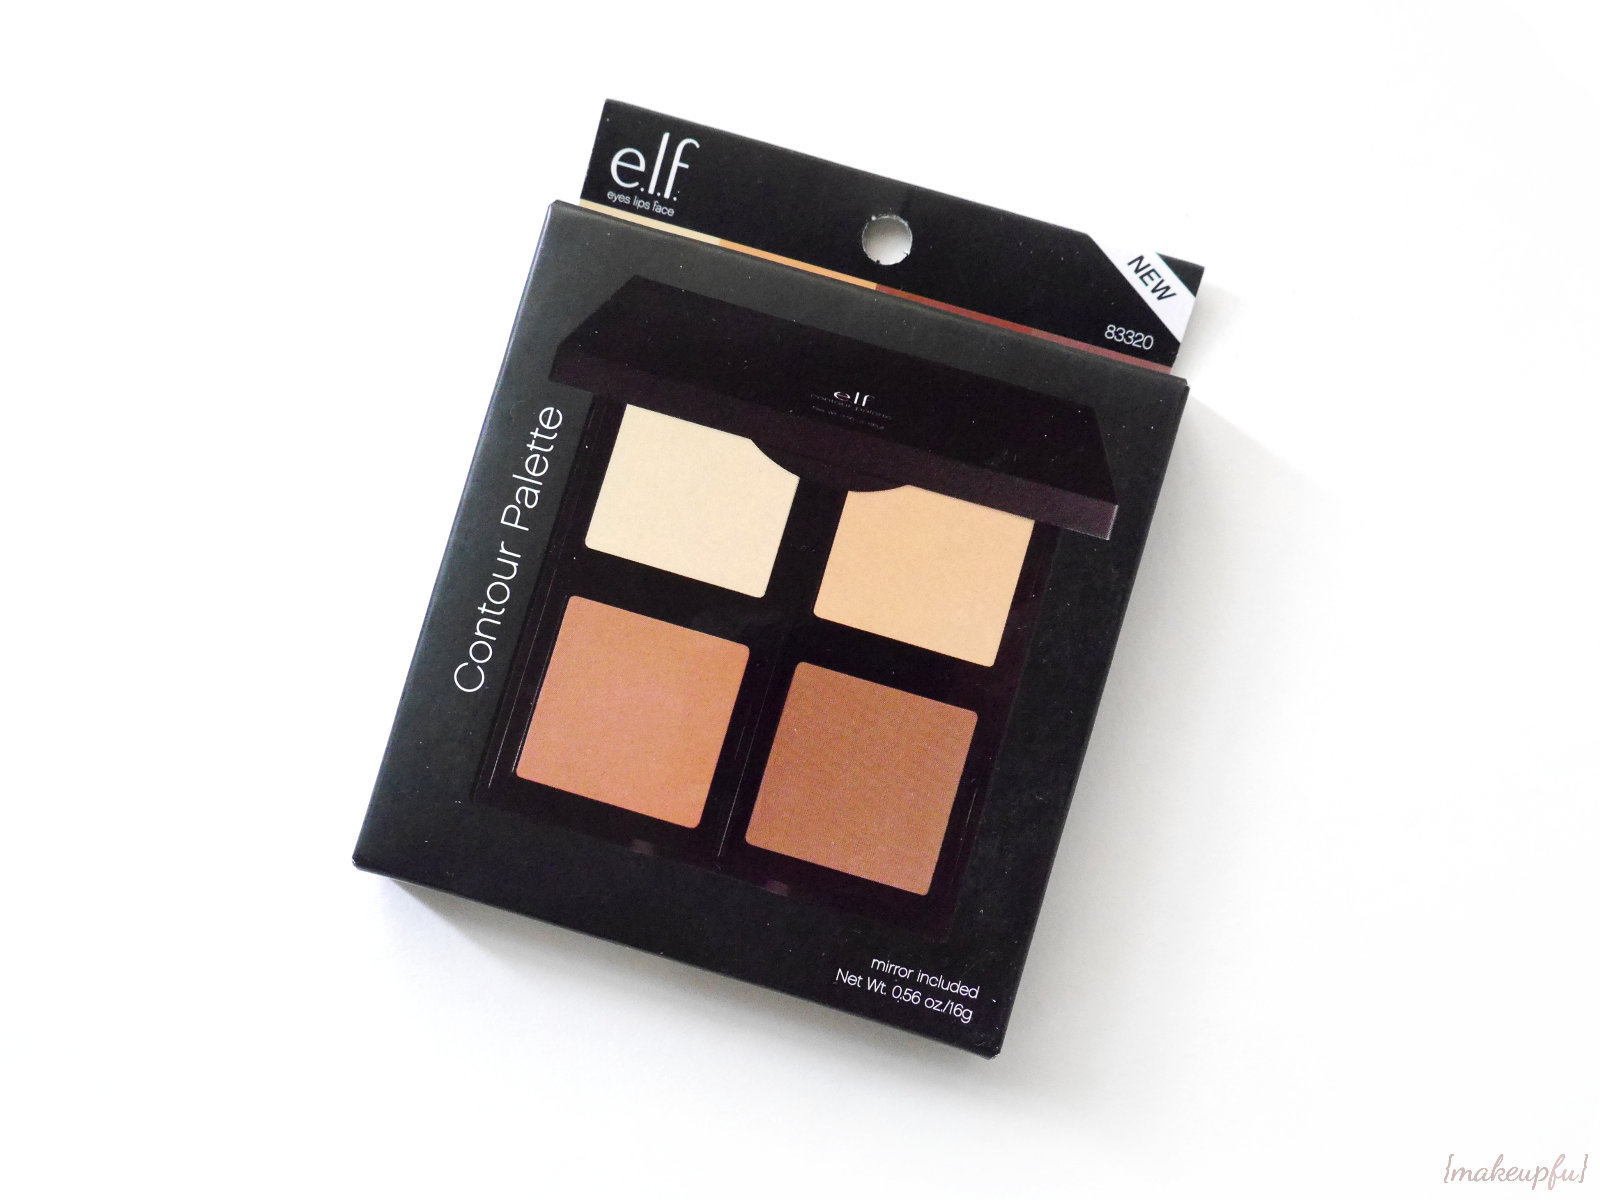 Front Of The Box Packaging For The Elf Studio Contour Palette